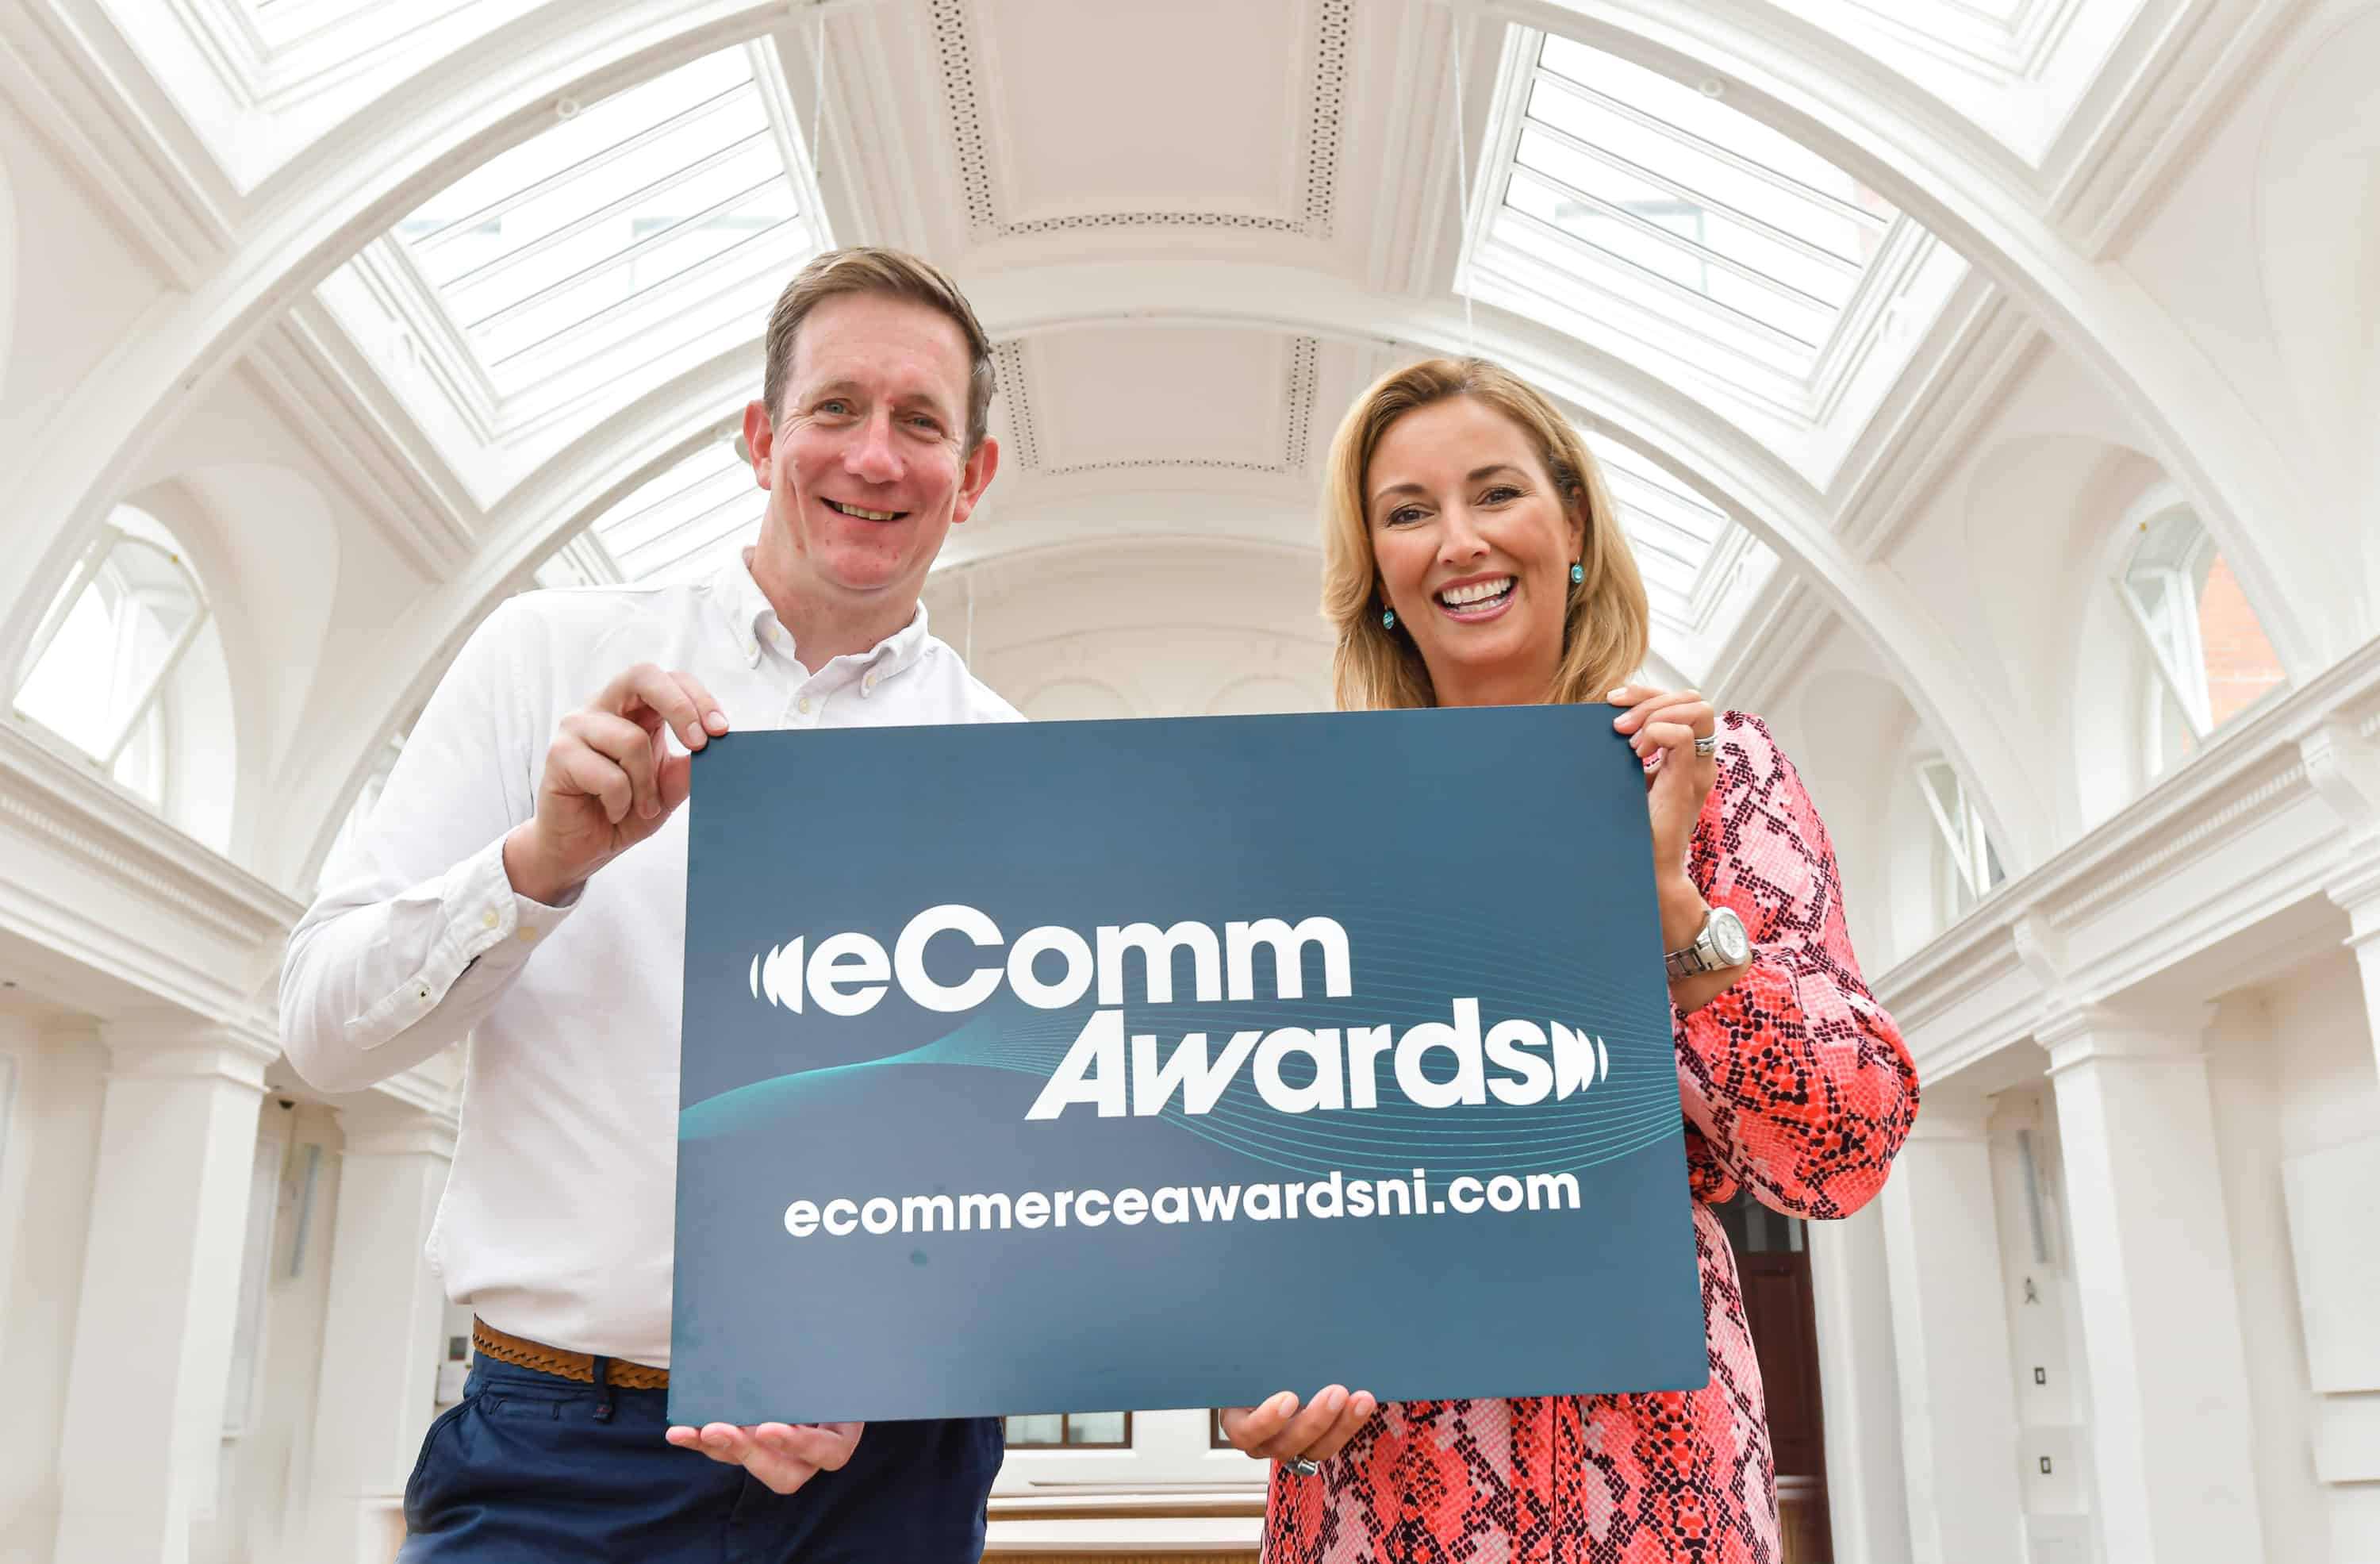 Kevin Traynor from eCommerce Awards NI & Claire McCollum host of eCommerce Awards